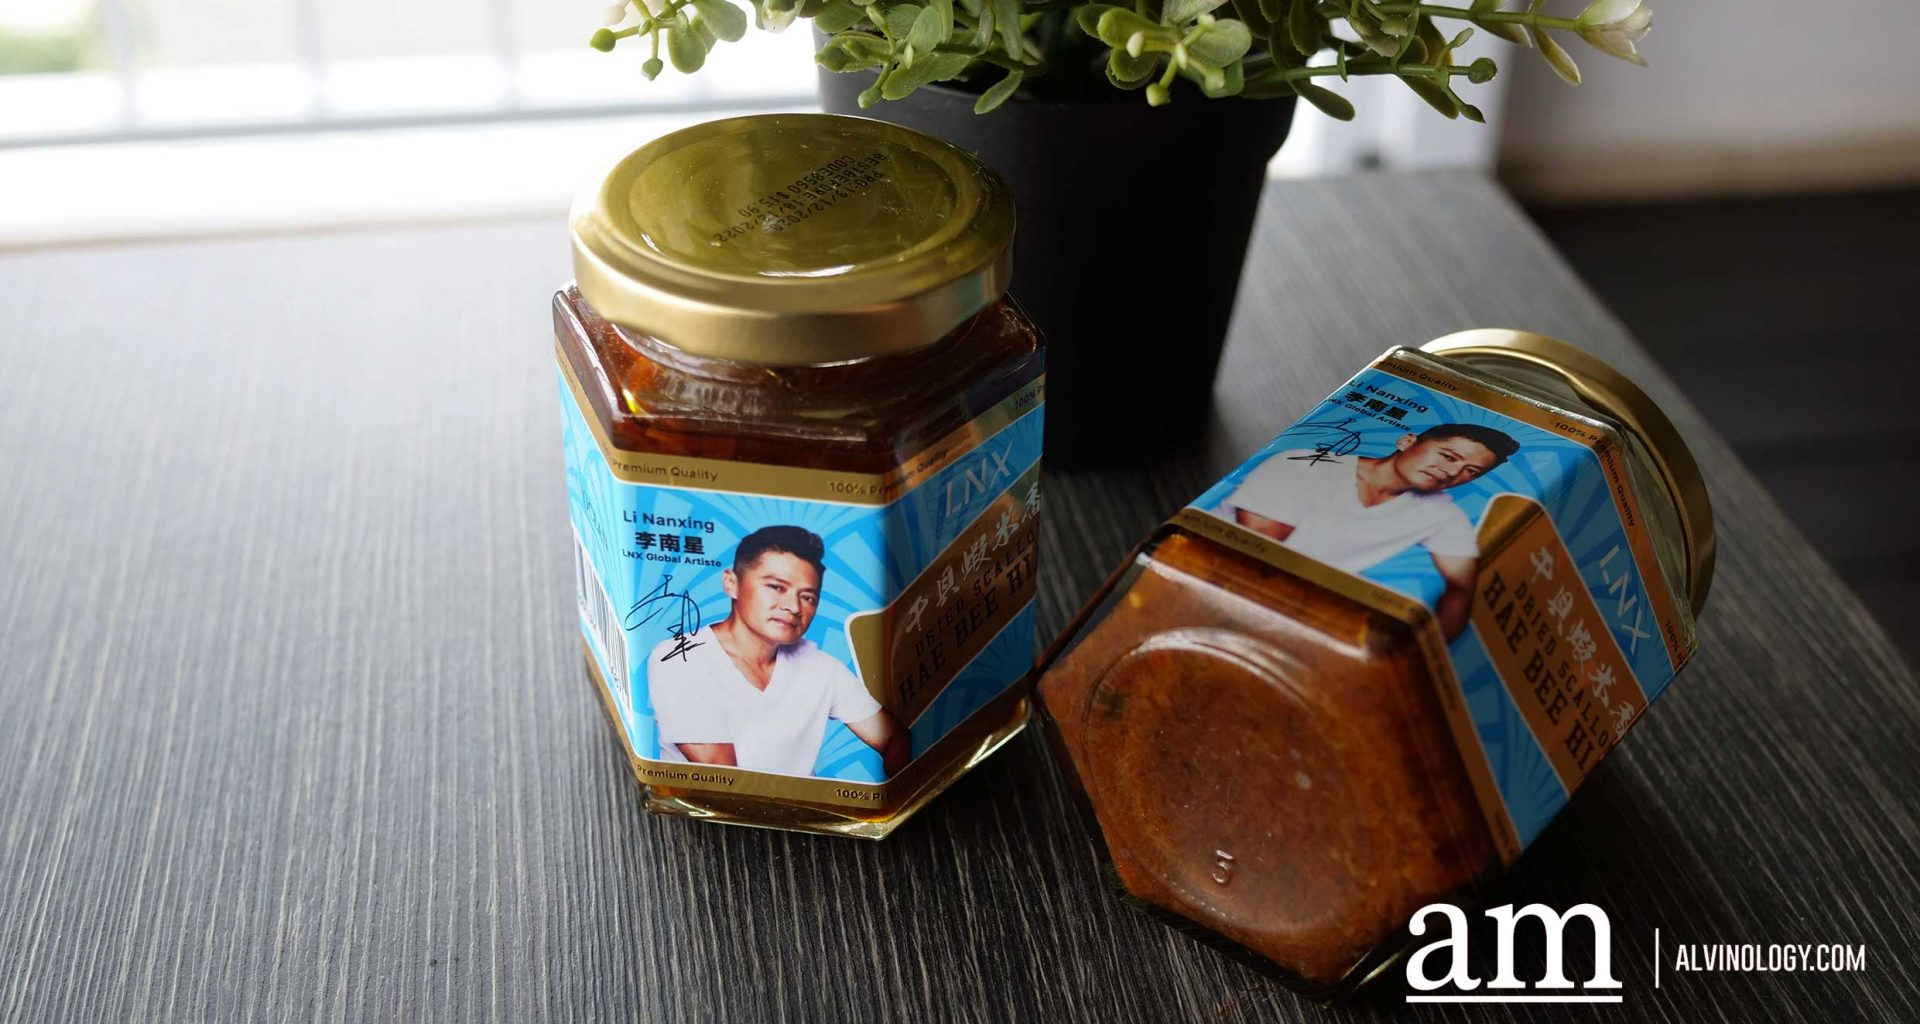 Ah Ge (阿哥) Li Nanxing launches his Own signature Dried Scallop Hae Bee Hiam Brand - Alvinology